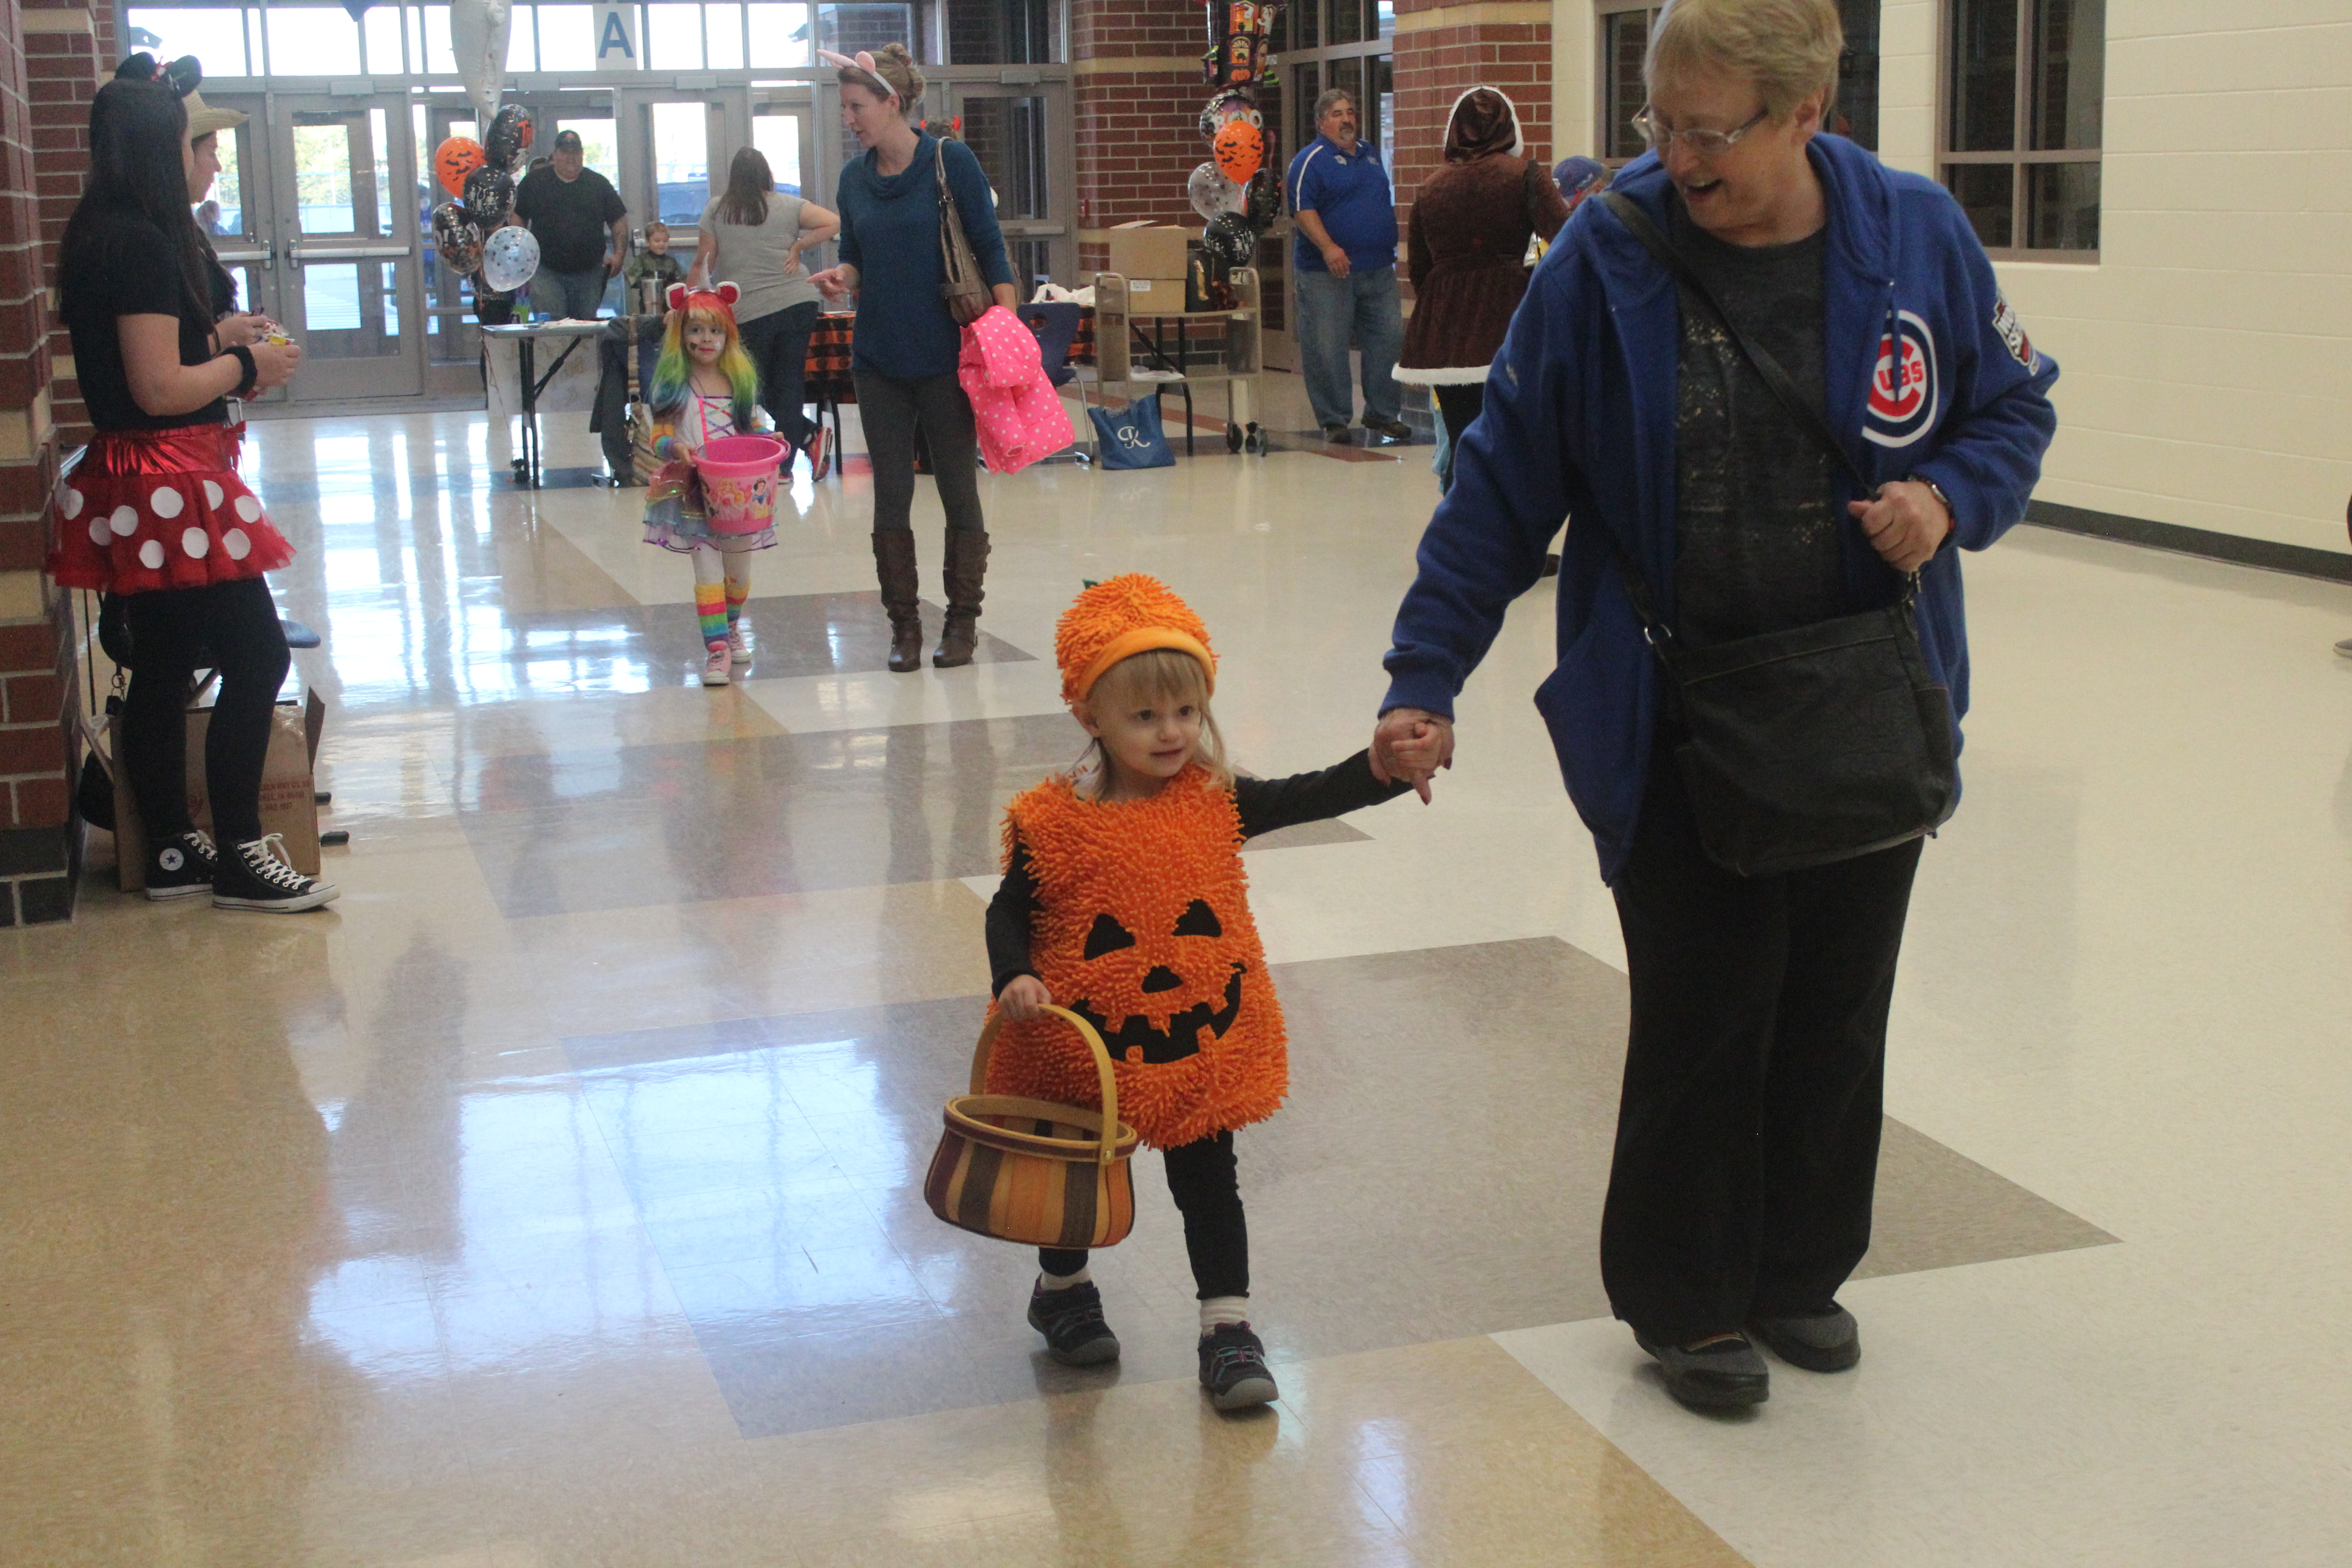 A small child is dressed as a pumpkin